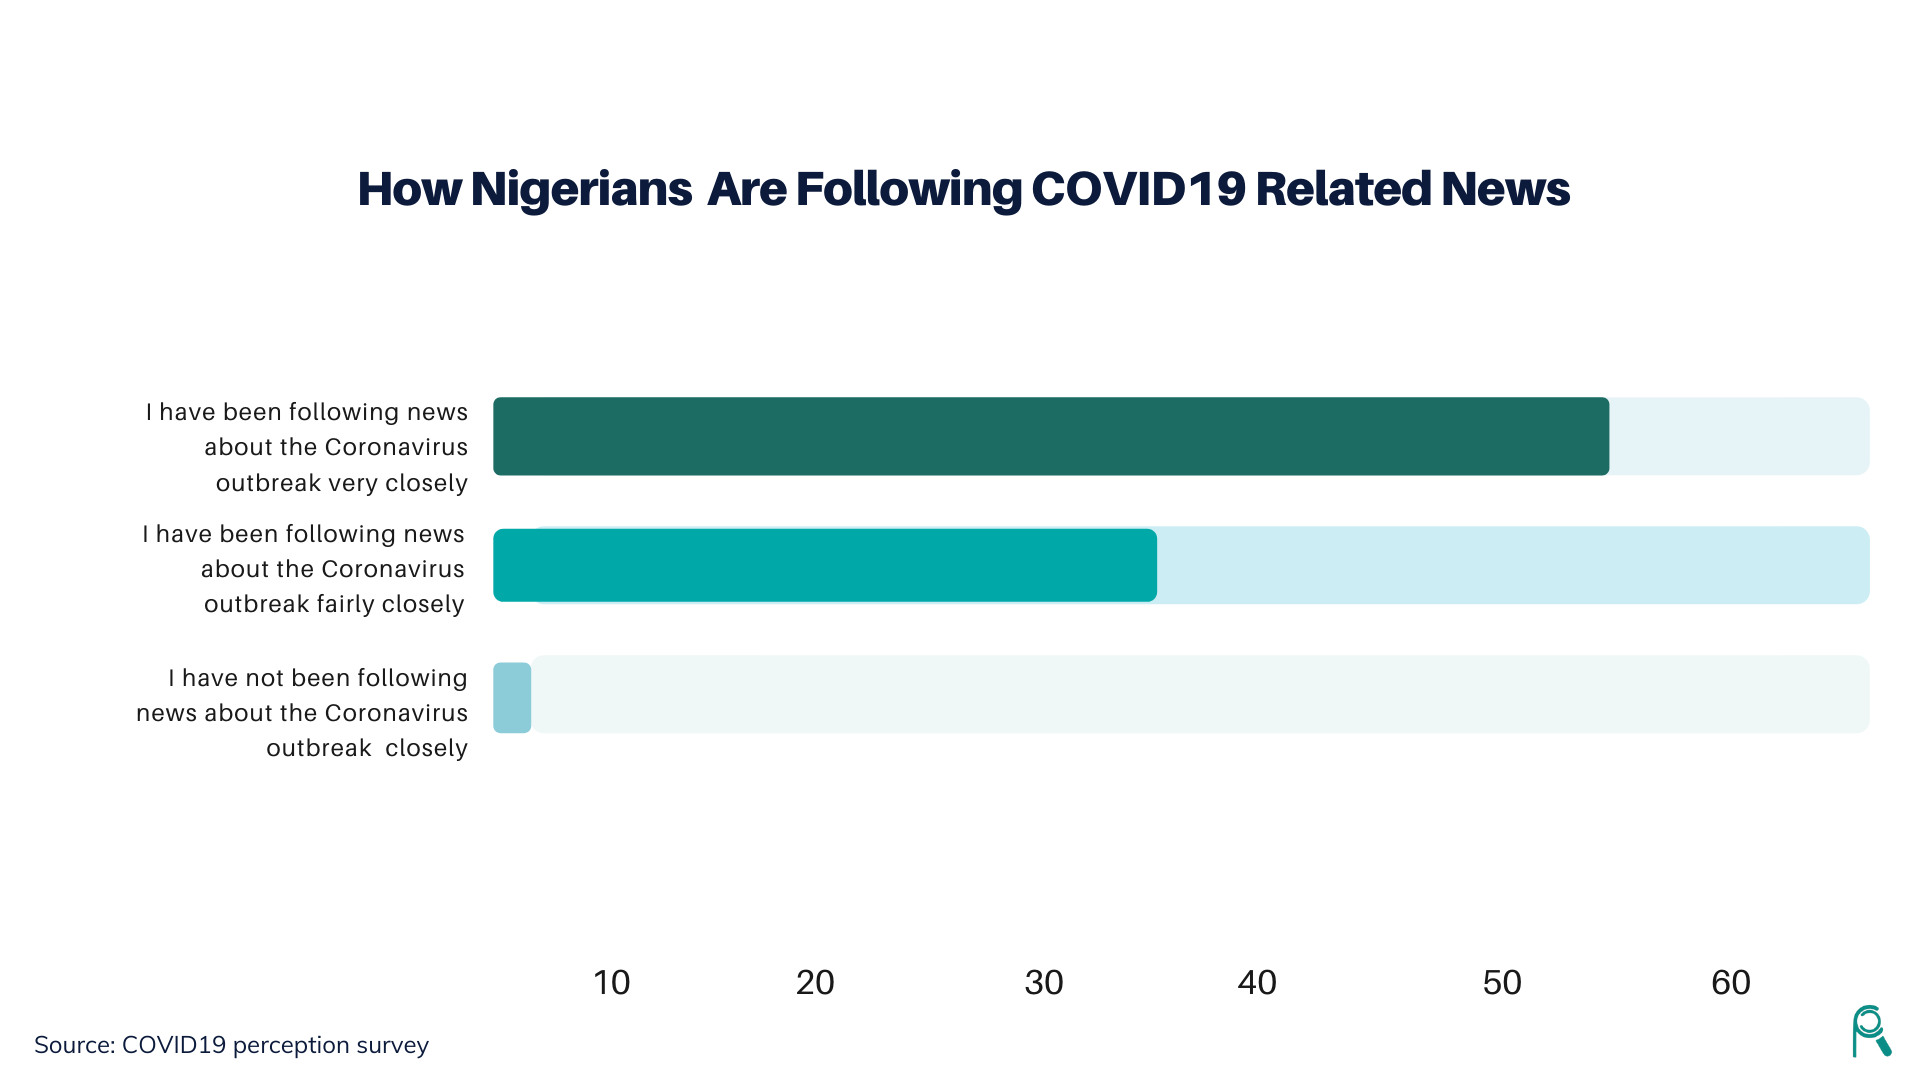 Where Nigerians Turn to for COVID-19 Related News